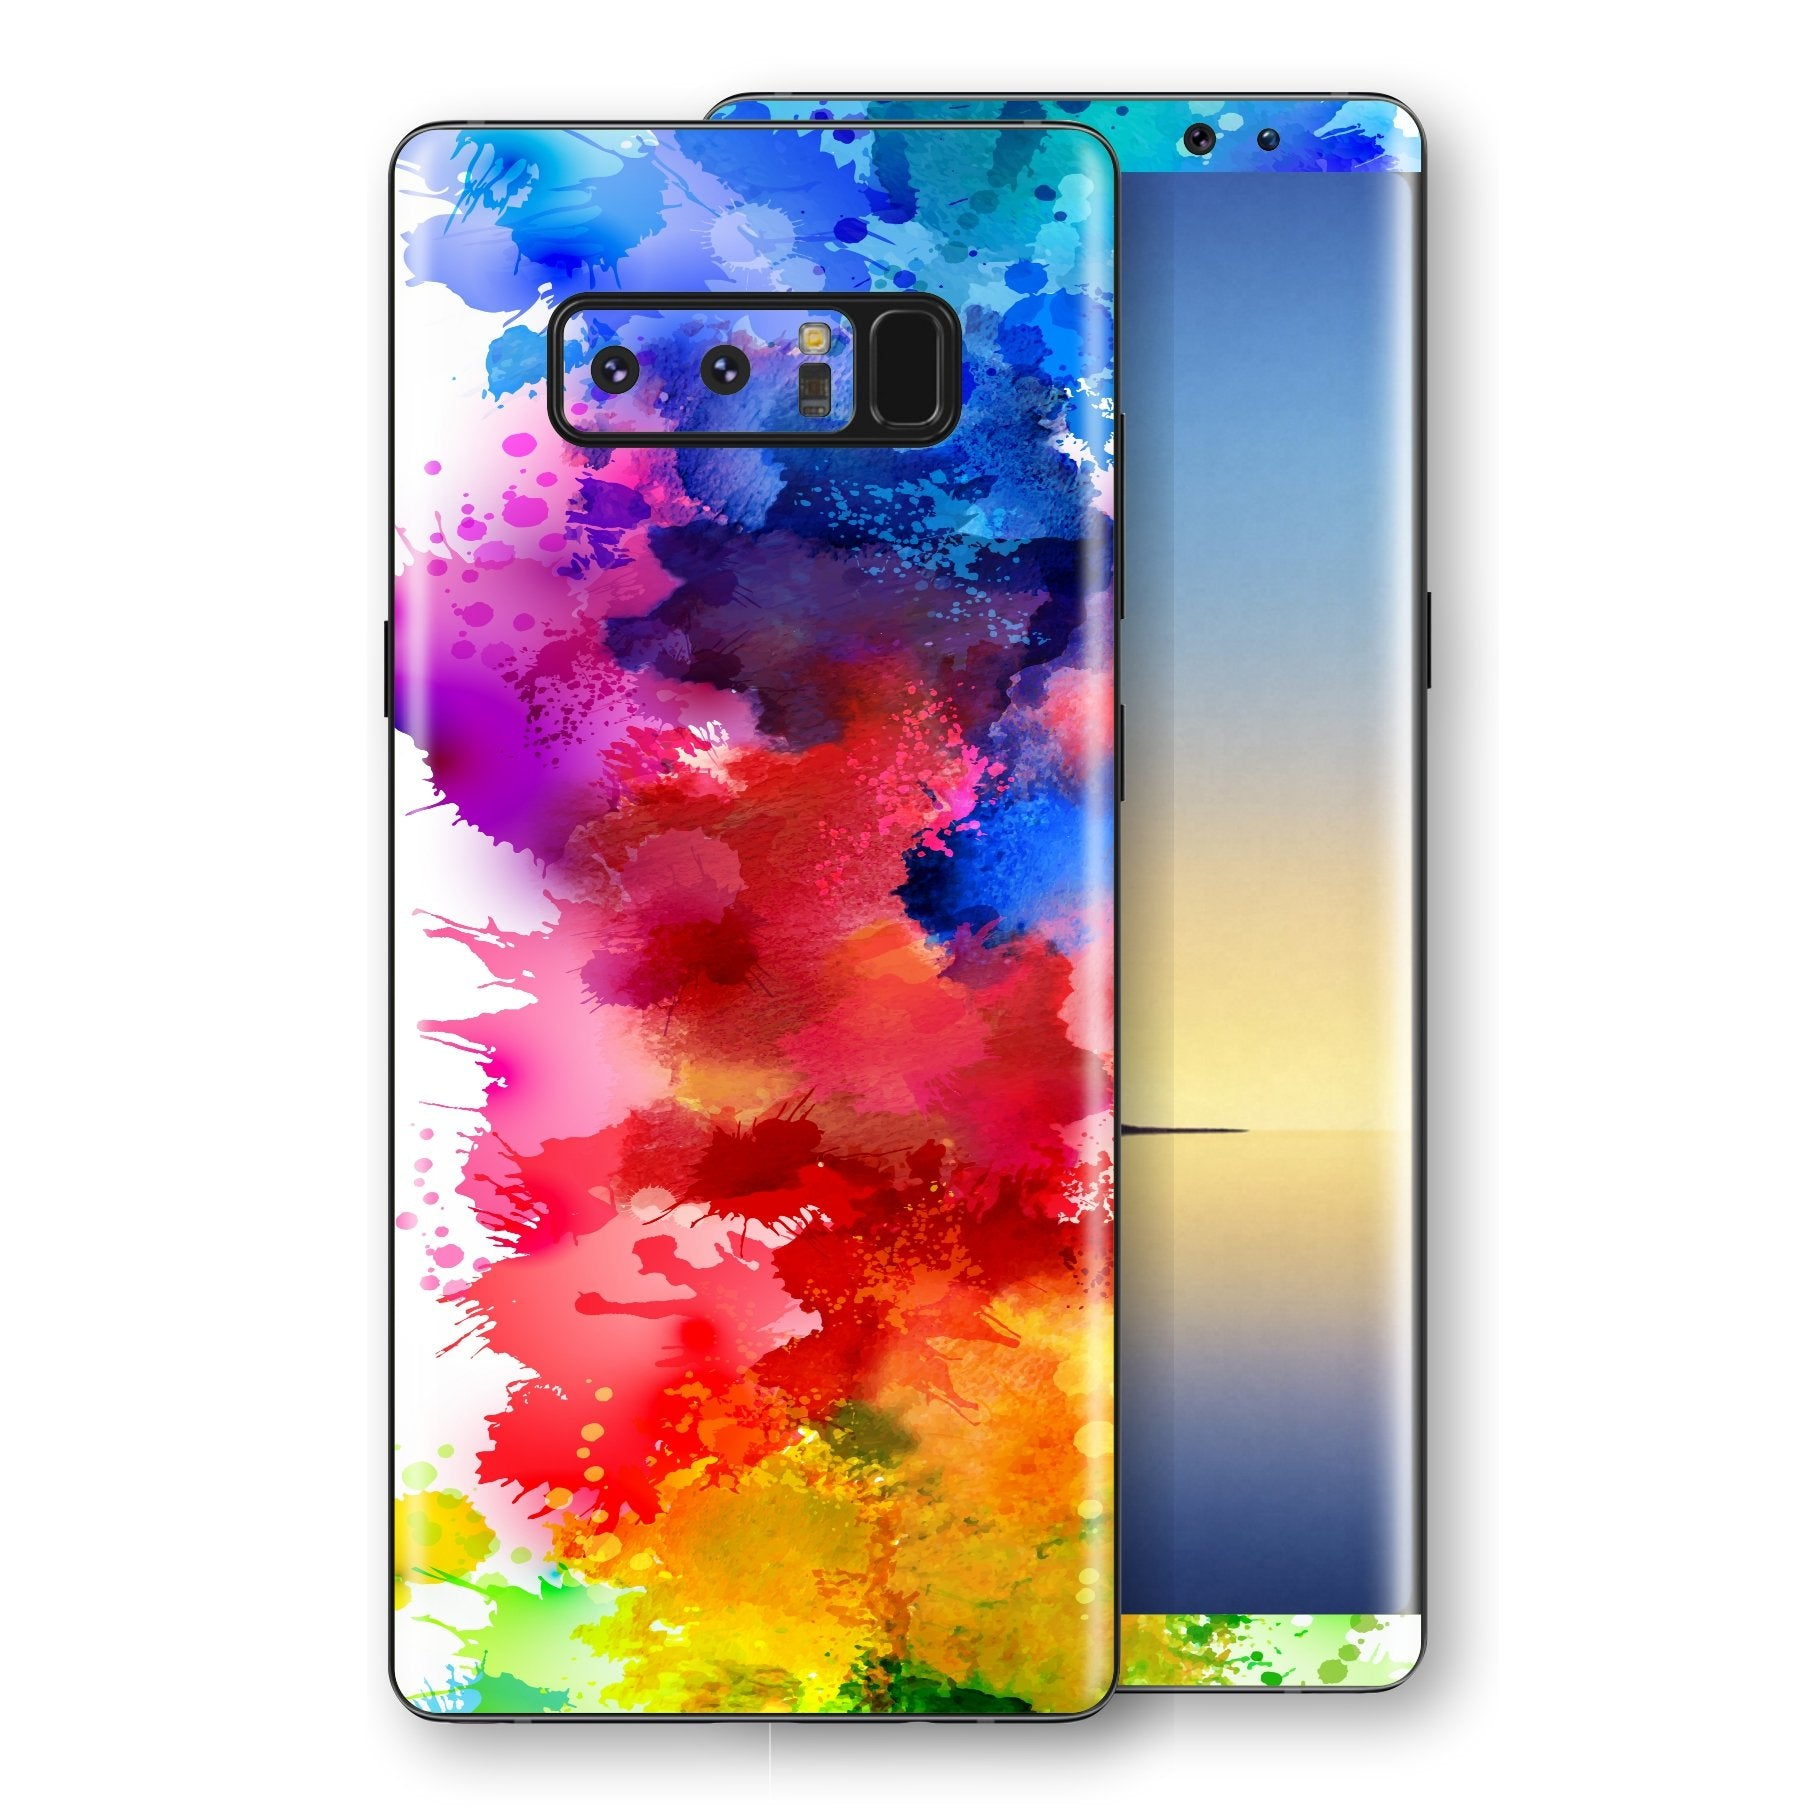 Samsung Galaxy NOTE 8 Signature Watercolour Skin Wrap Decal Protector | EasySkinz